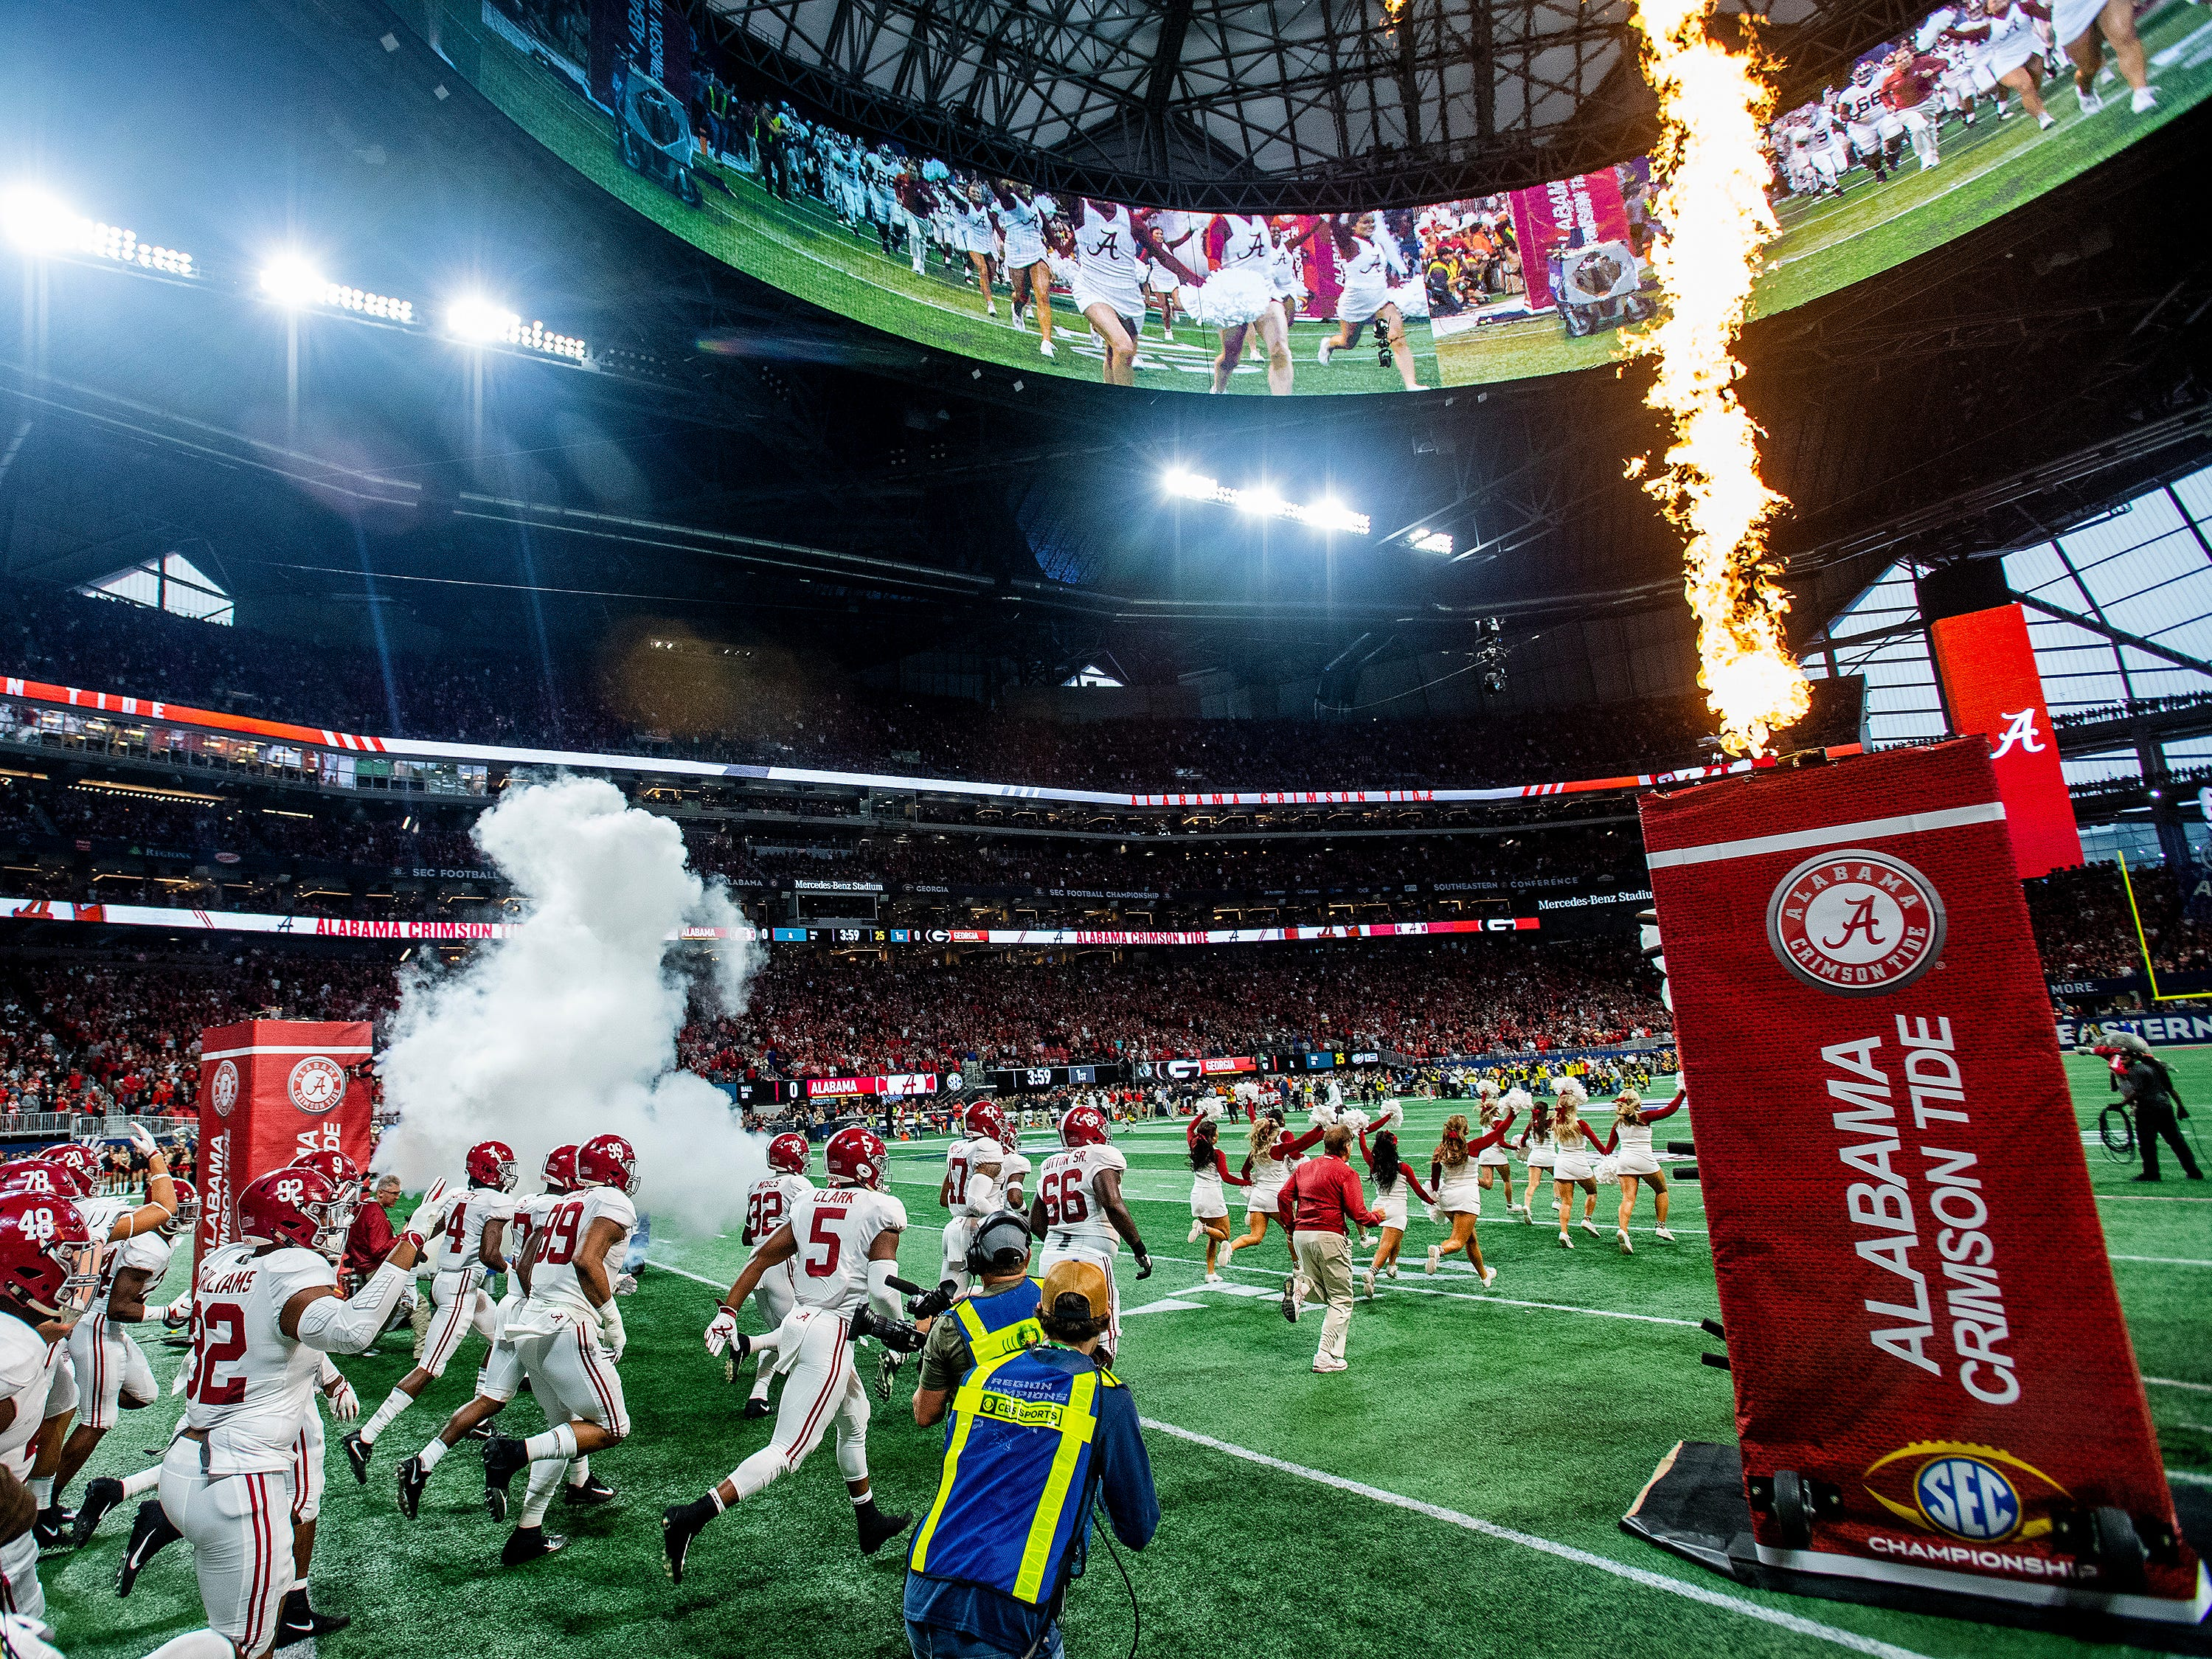 Alabama takes the field against Georgia in the SEC Championship Game at Mercedes Benz Stadium in Atlanta, Ga., on Saturday December 1, 2018.